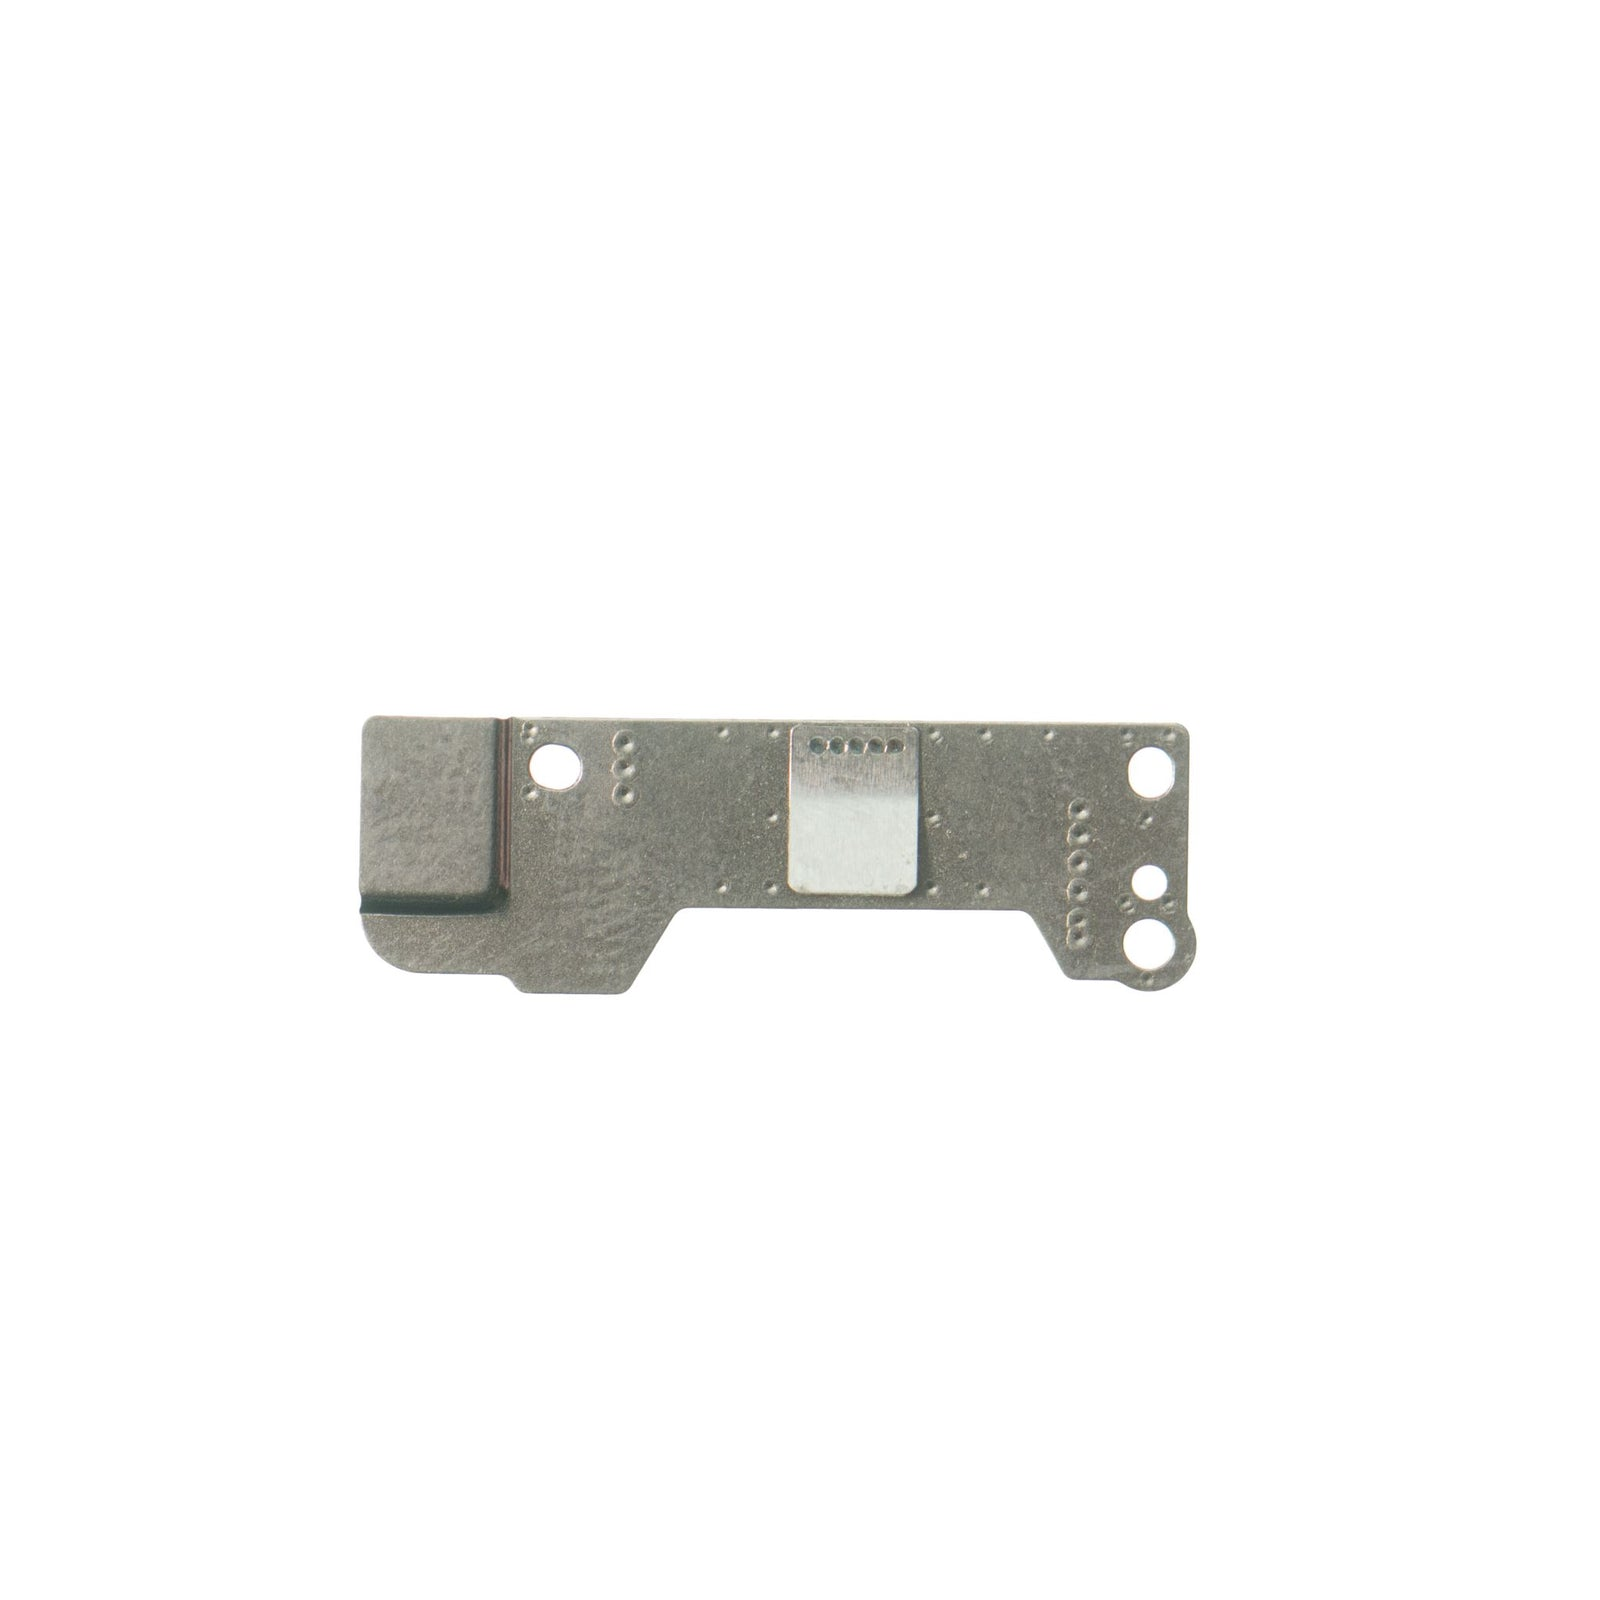 822-10095_etech_parts_wholesale_iphone_6s_home_button_bracket_6777-edit_RVHE3JSX7PQH.jpg